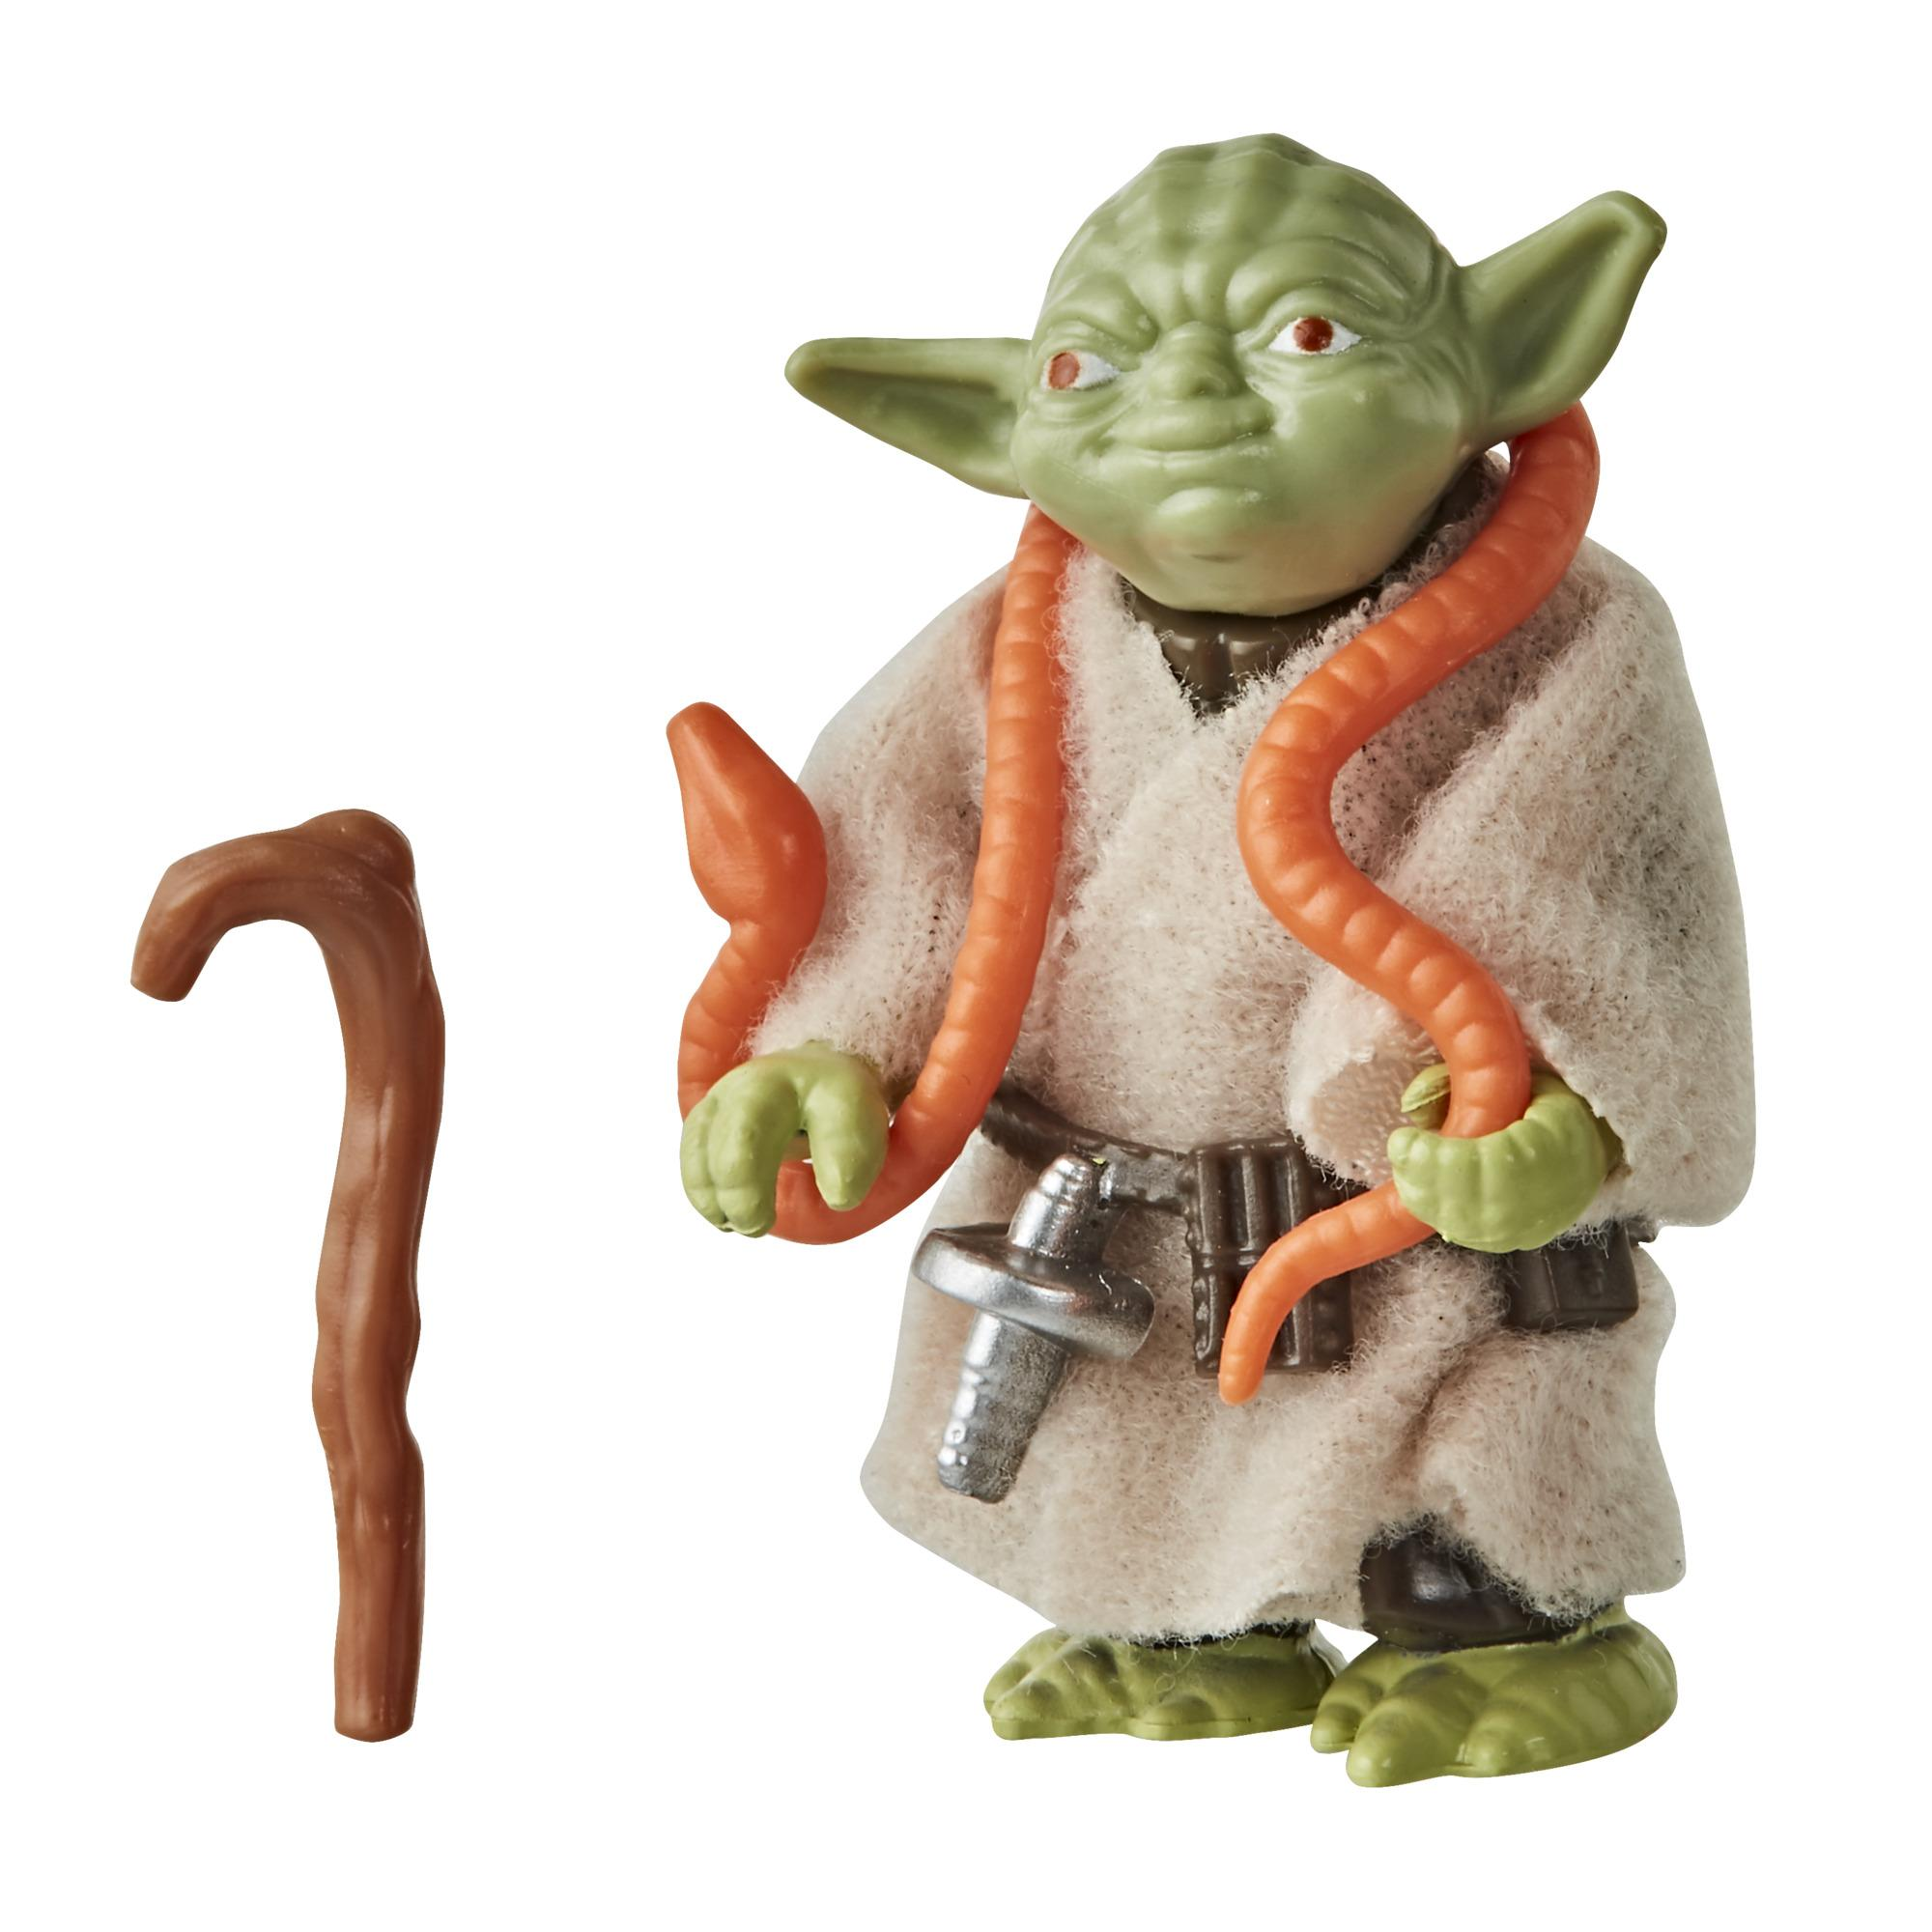 Star Wars Retro Collection Yoda 3.75-inch Scale Star Wars: The Empire Strikes Back Action Figure, Kids Ages 4 and Up